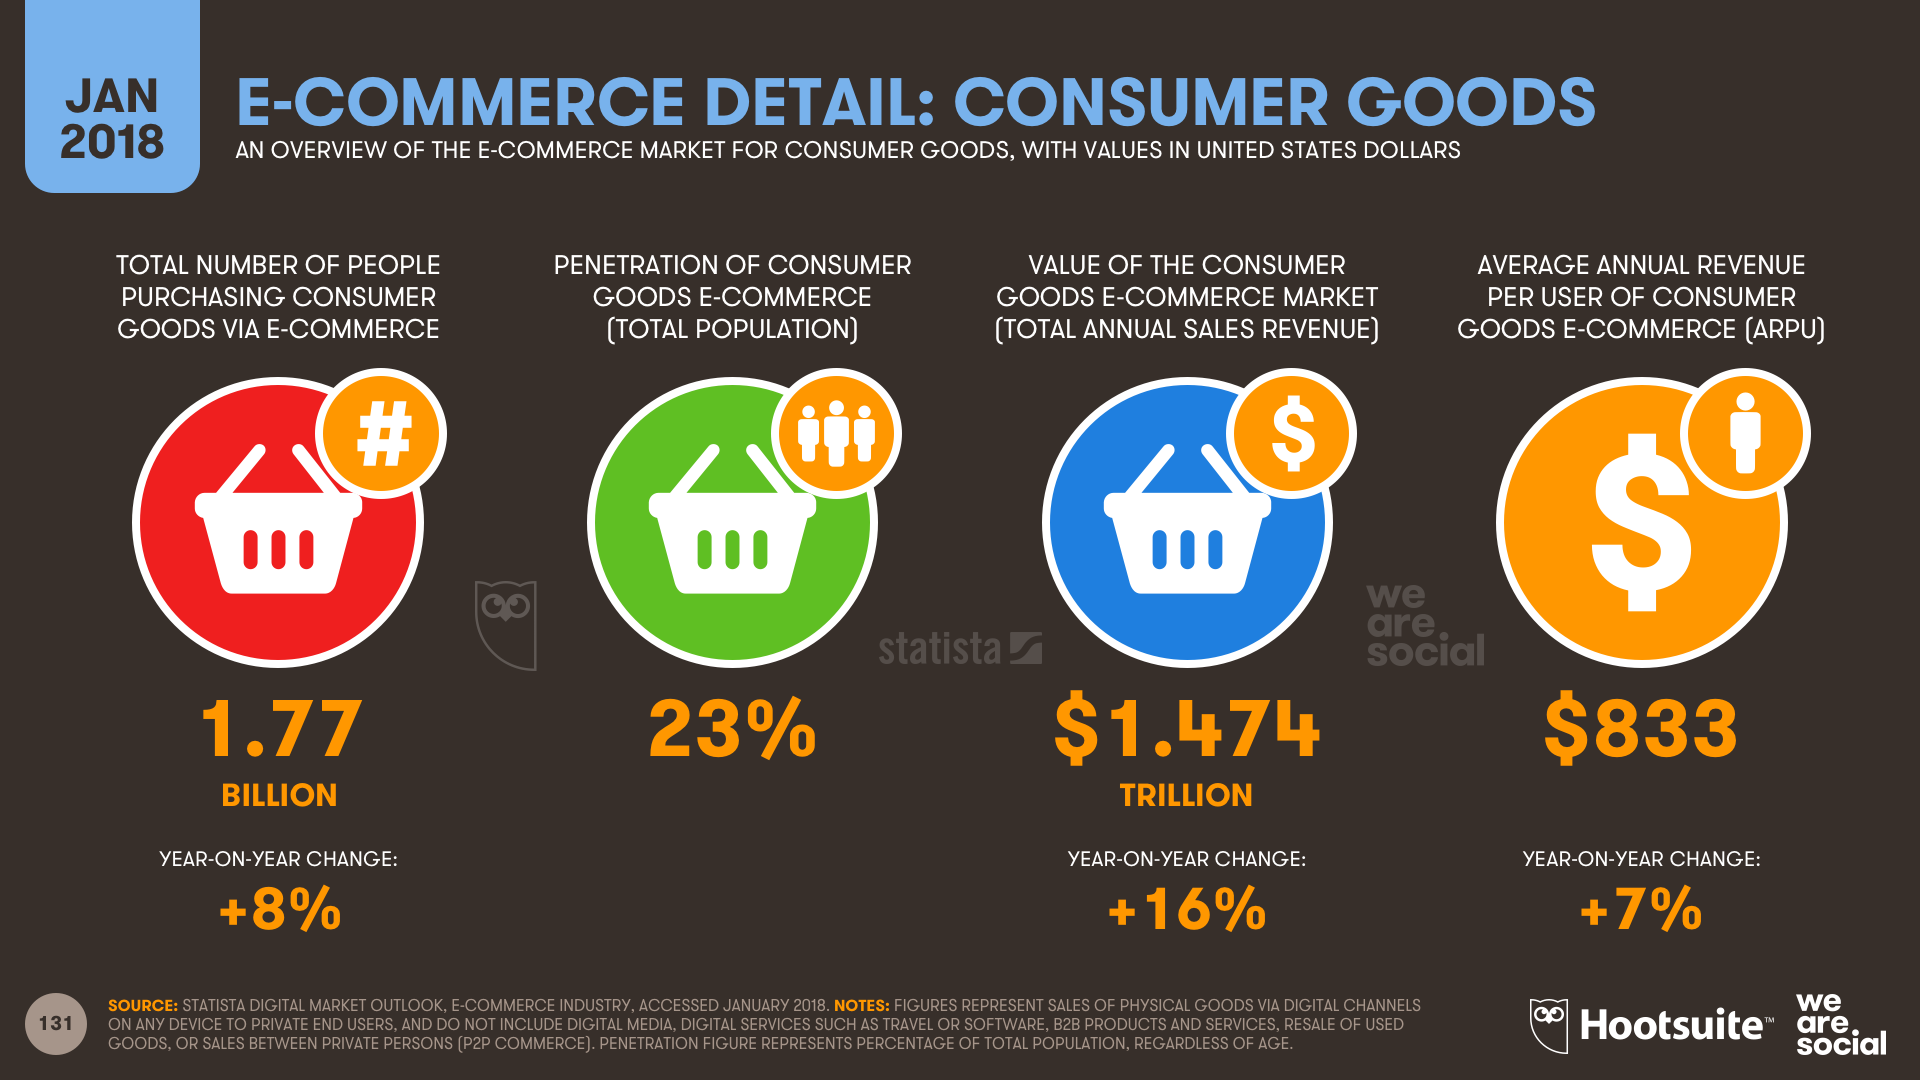 e-commerce detail: consumer goods